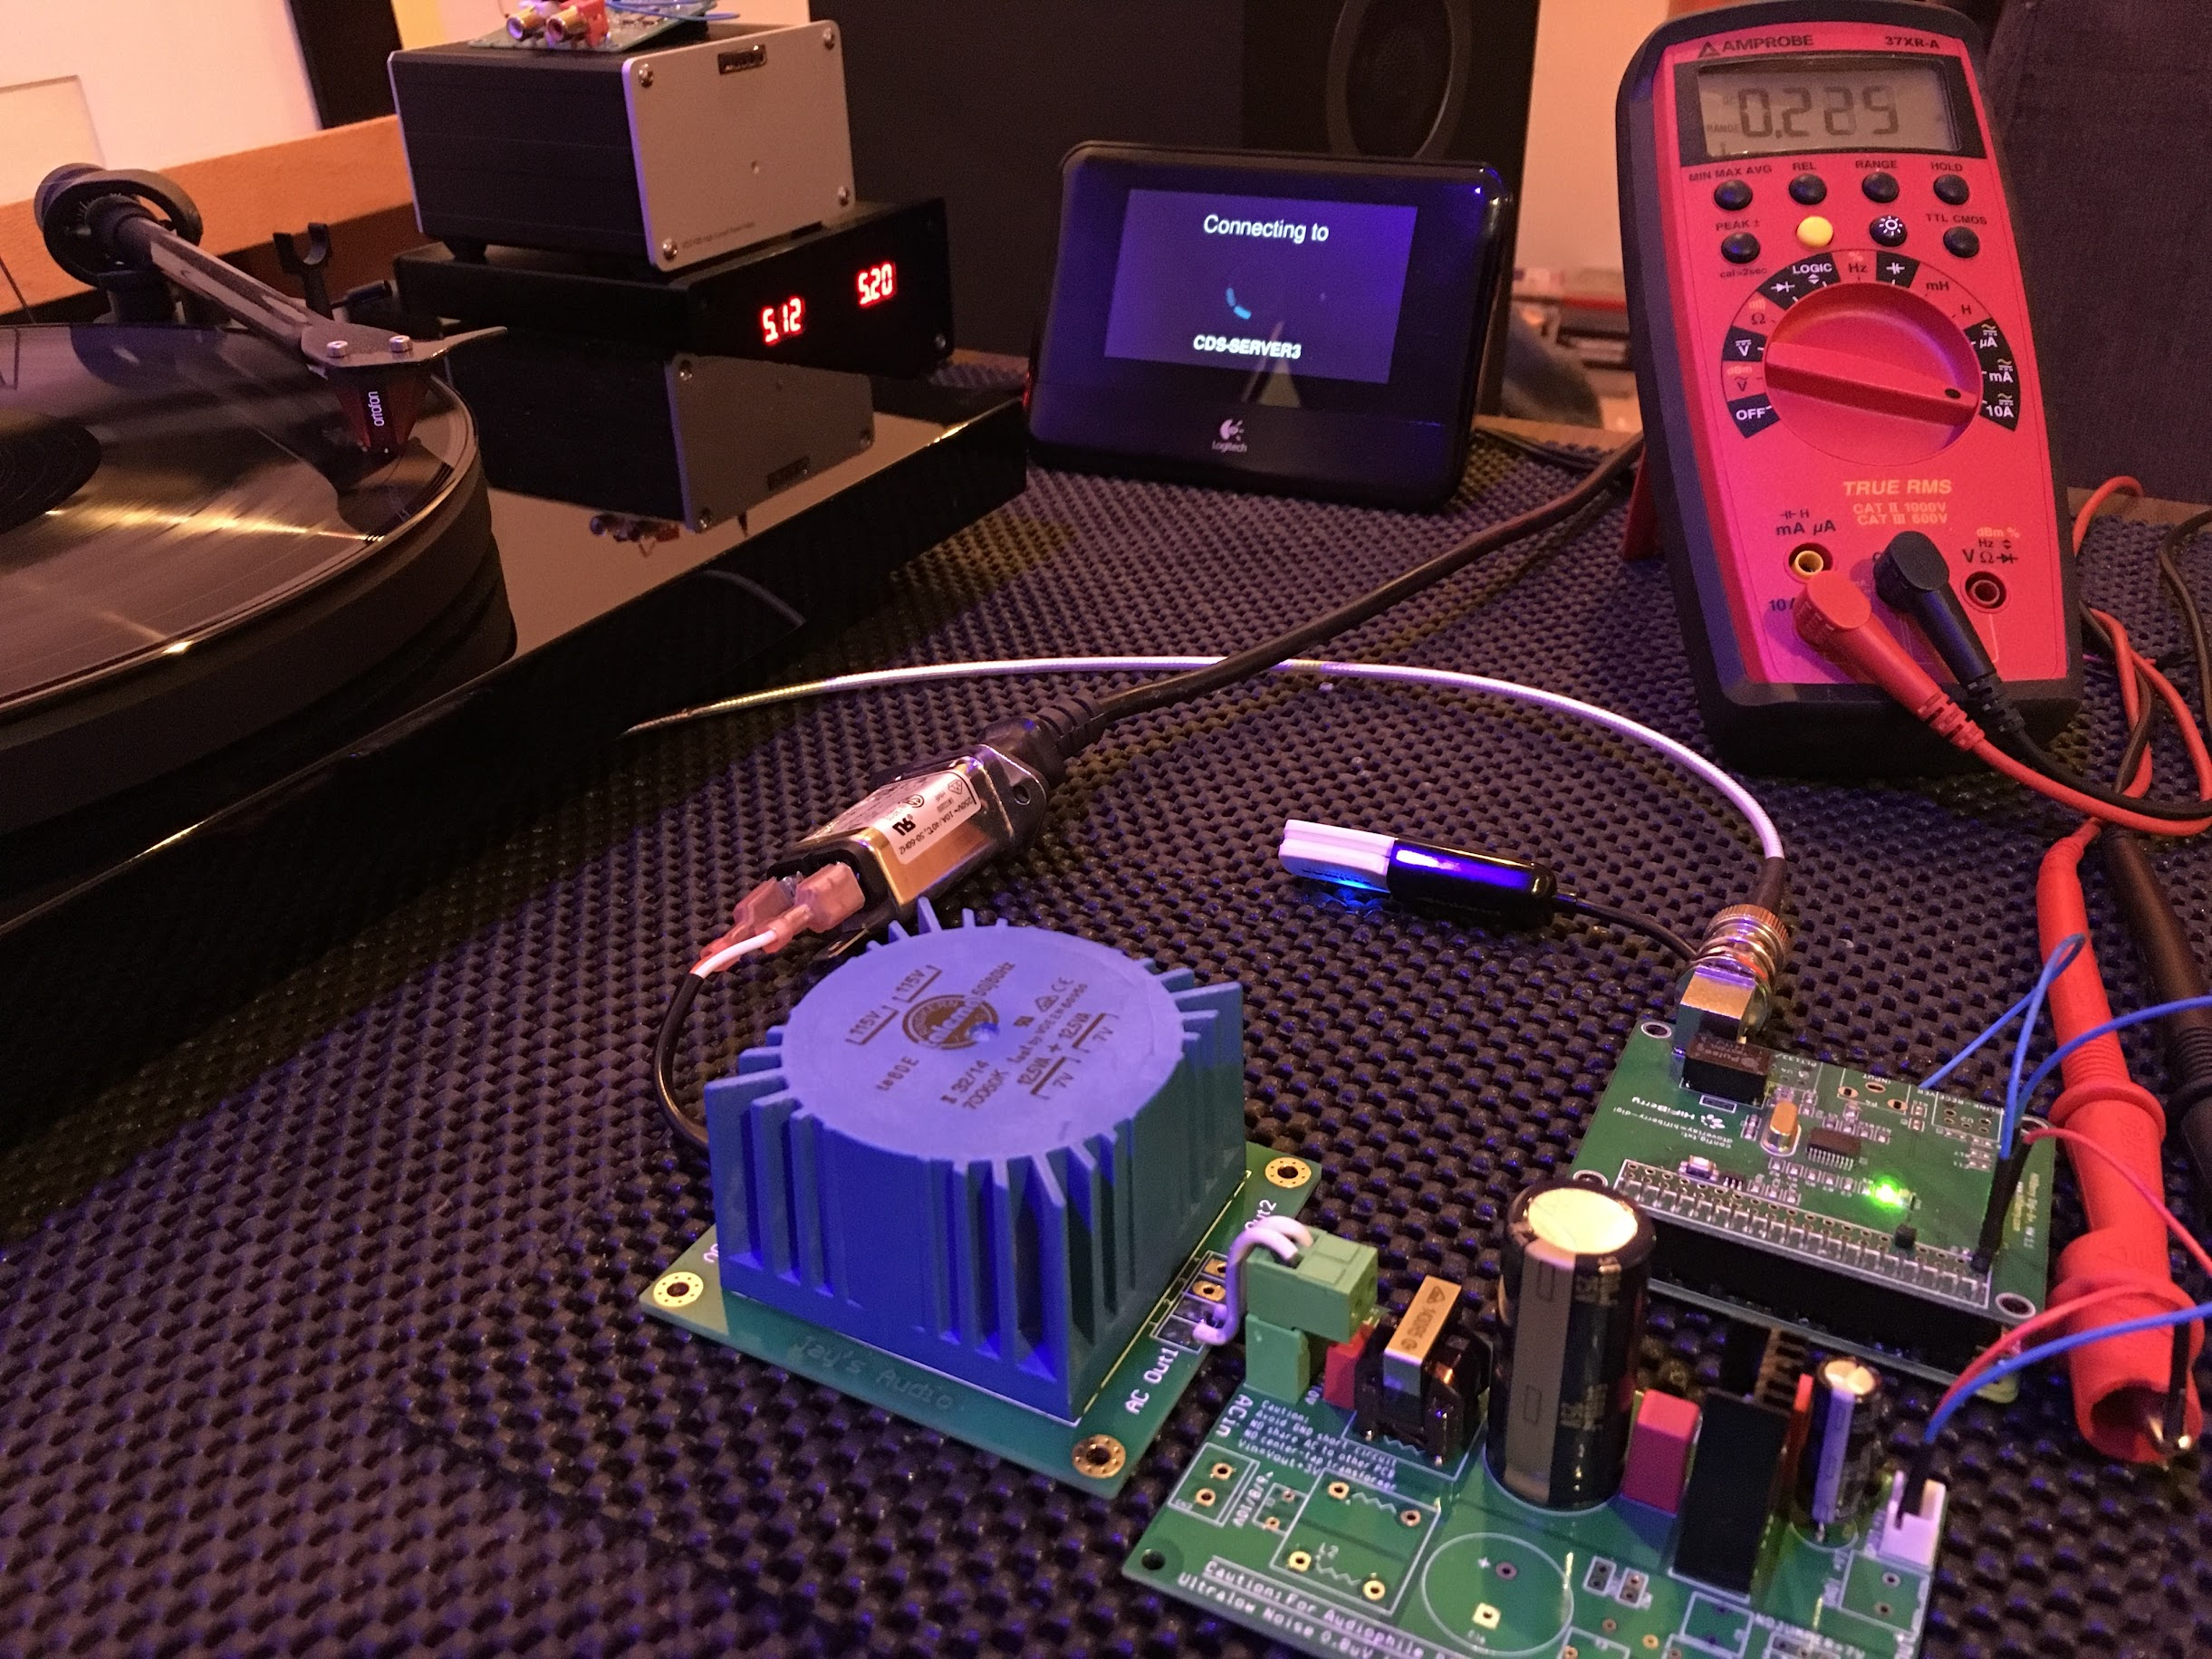 Raspberry Pi2 and Hifiberry Digi+: A cheap transport that